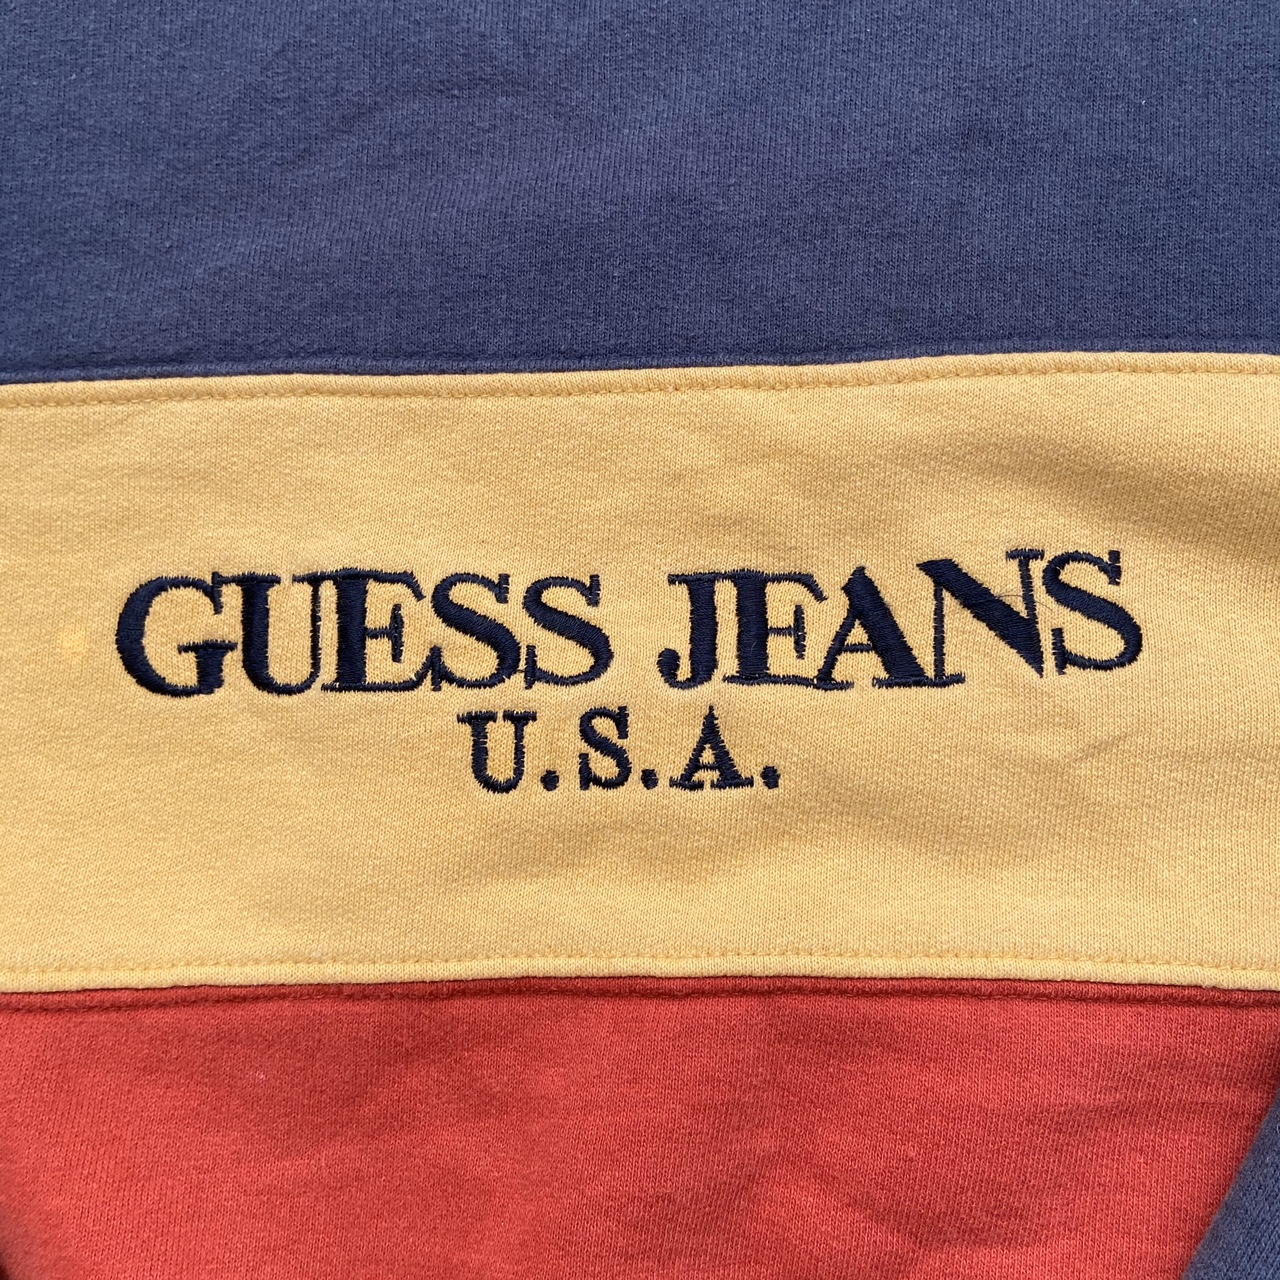 Product Image 2 - Vintage guess sweatshirt Cool color blocked